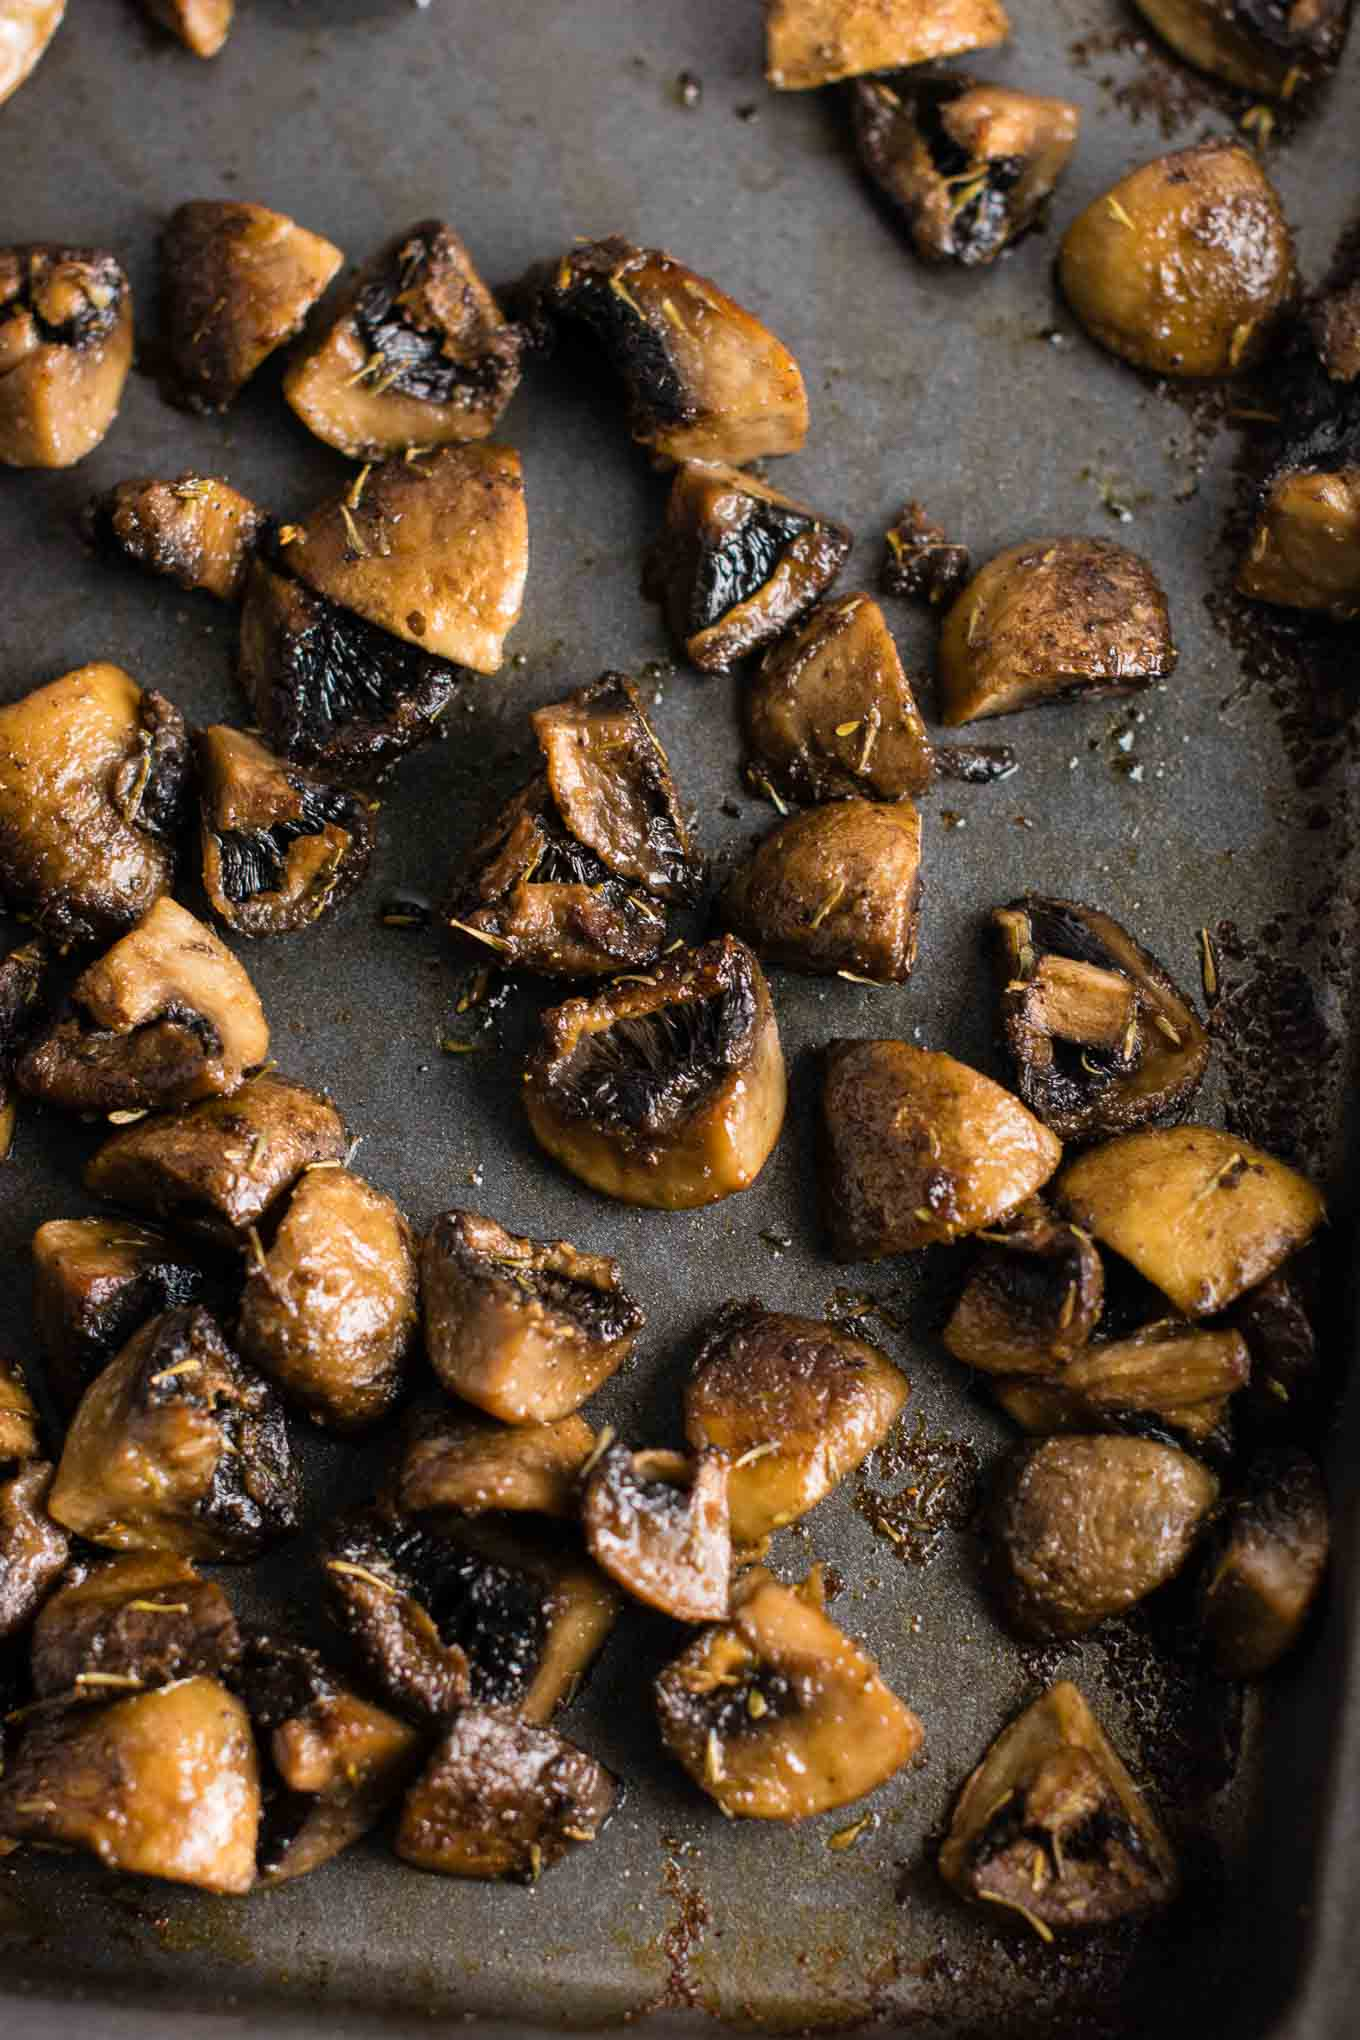 Quick and easy roasted mushrooms recipe. Perfect healthy side dish! #sidedish #roastedmushrooms #vegan #meatless #mushrooms #dinner #vegetables